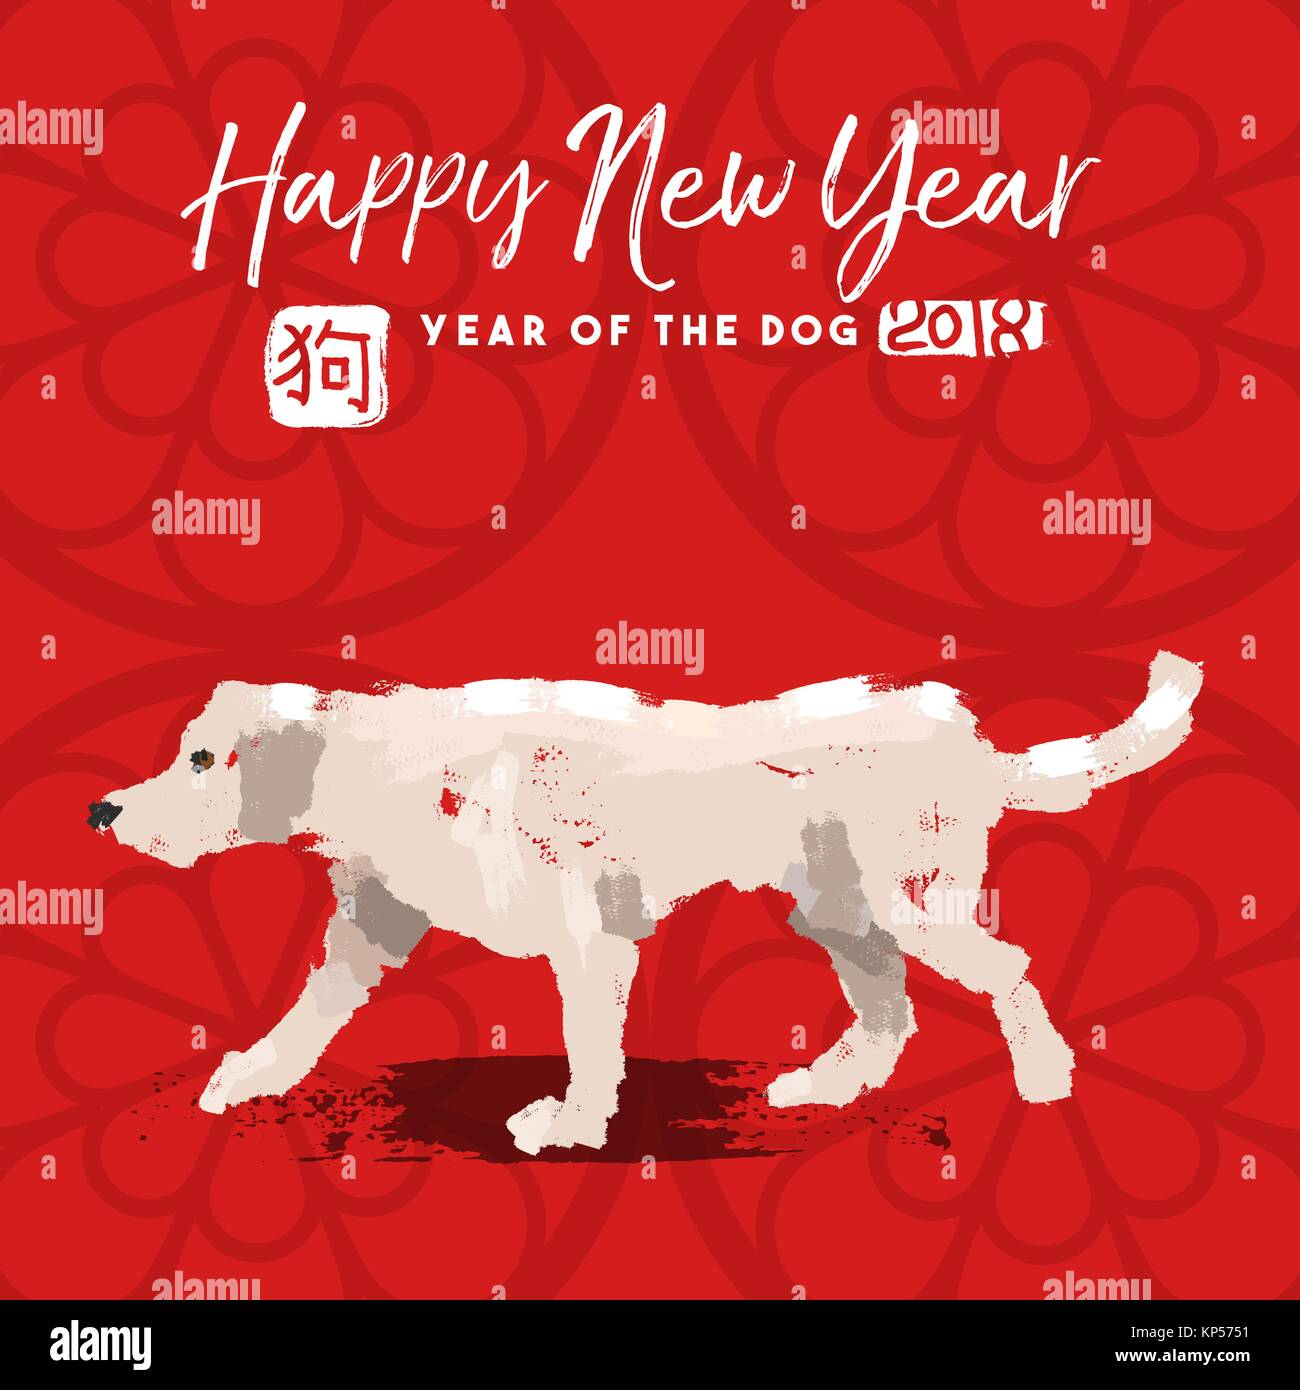 2018 happy chinese new year greeting card design with hand drawn 2018 happy chinese new year greeting card design with hand drawn animal illustration and traditional calligraphy that means dog eps10 vector m4hsunfo